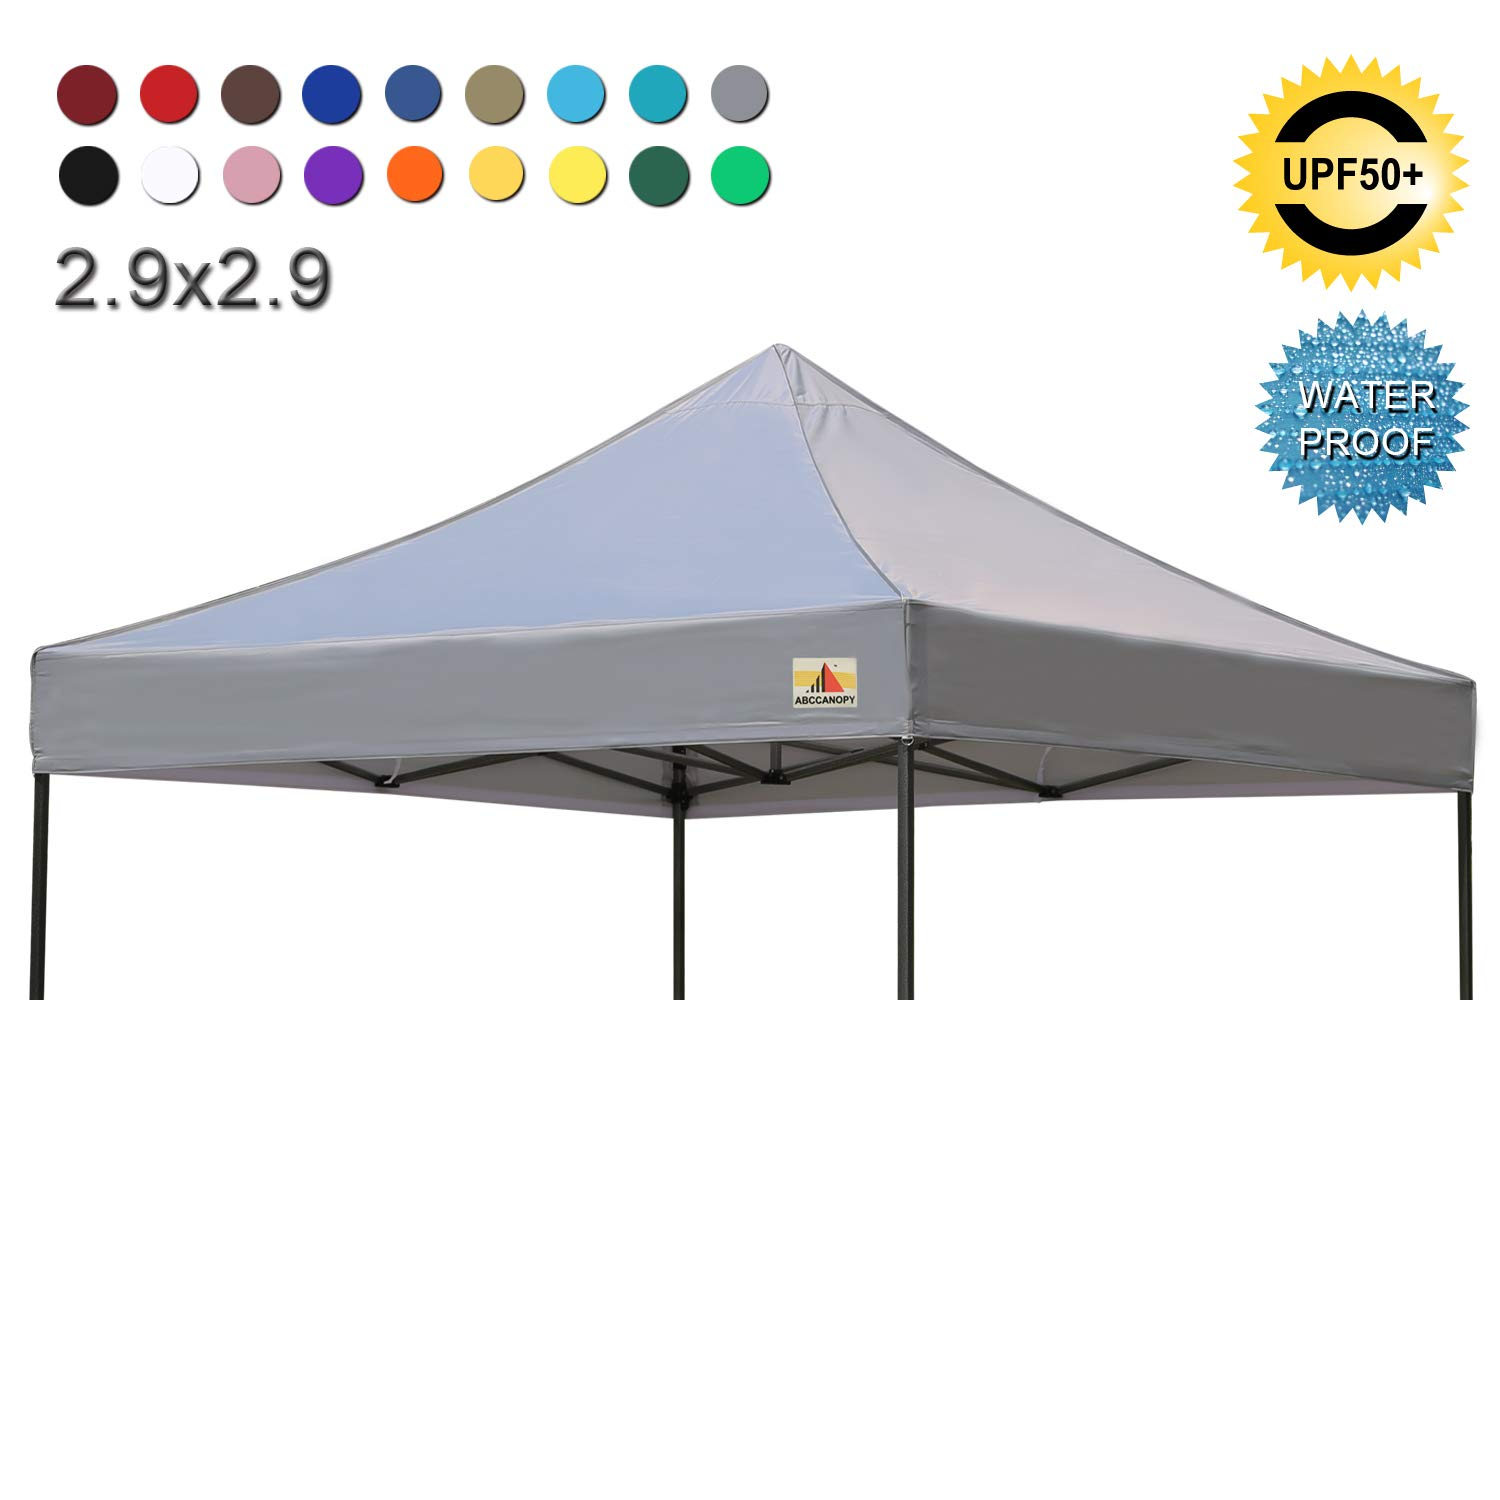 ABCCANOPY 3x3 Pop Up Gazebo Fully Waterproof Heavy Duty Canopy Instant Shelter With Adjustable Half Awnings,Burgundy